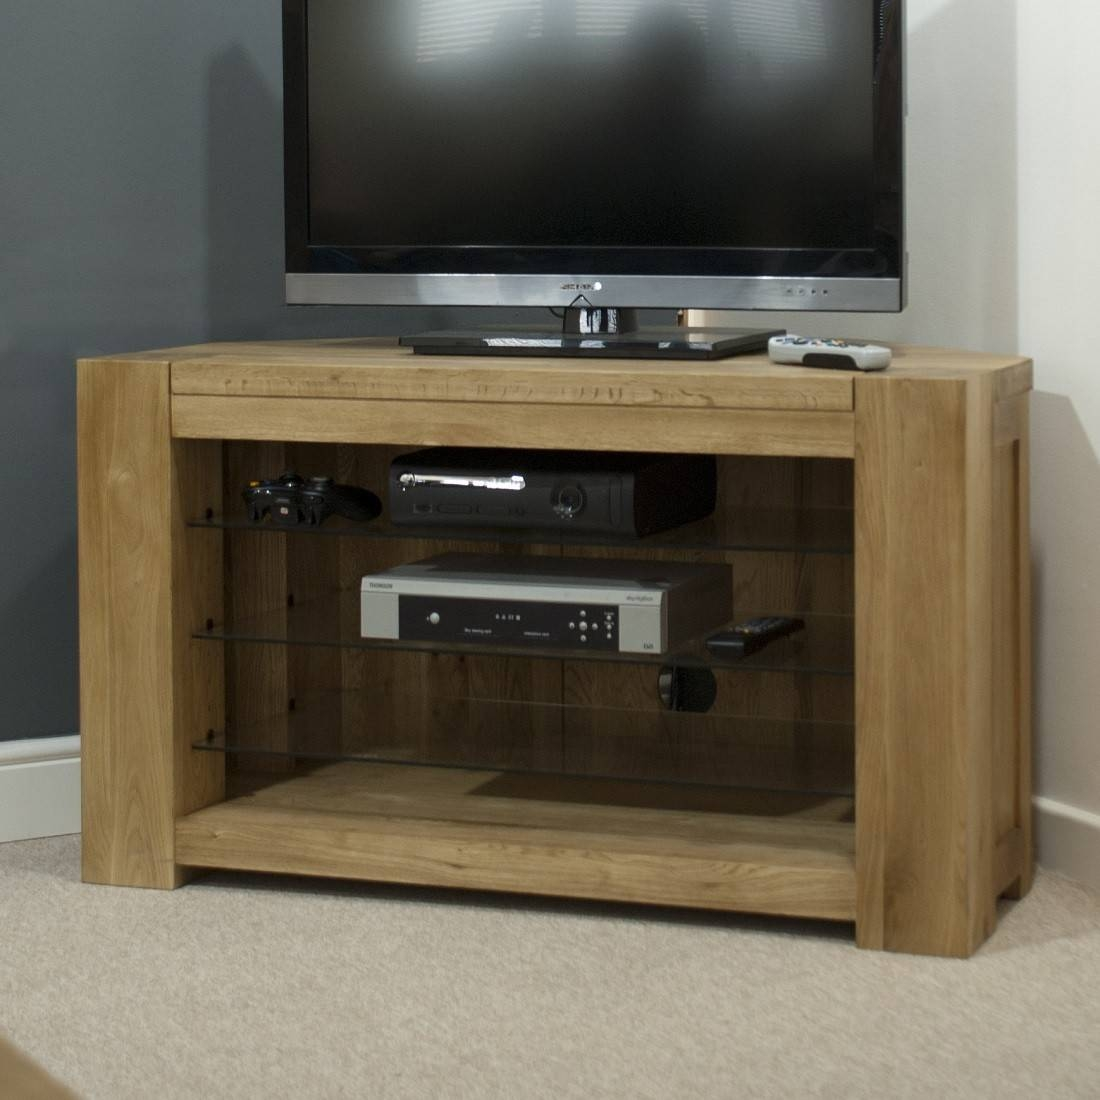 Trend Solid Oak Corner Tv Unit | Oak Furniture Uk Throughout Oak Tv Stands For Flat Screens (View 3 of 15)